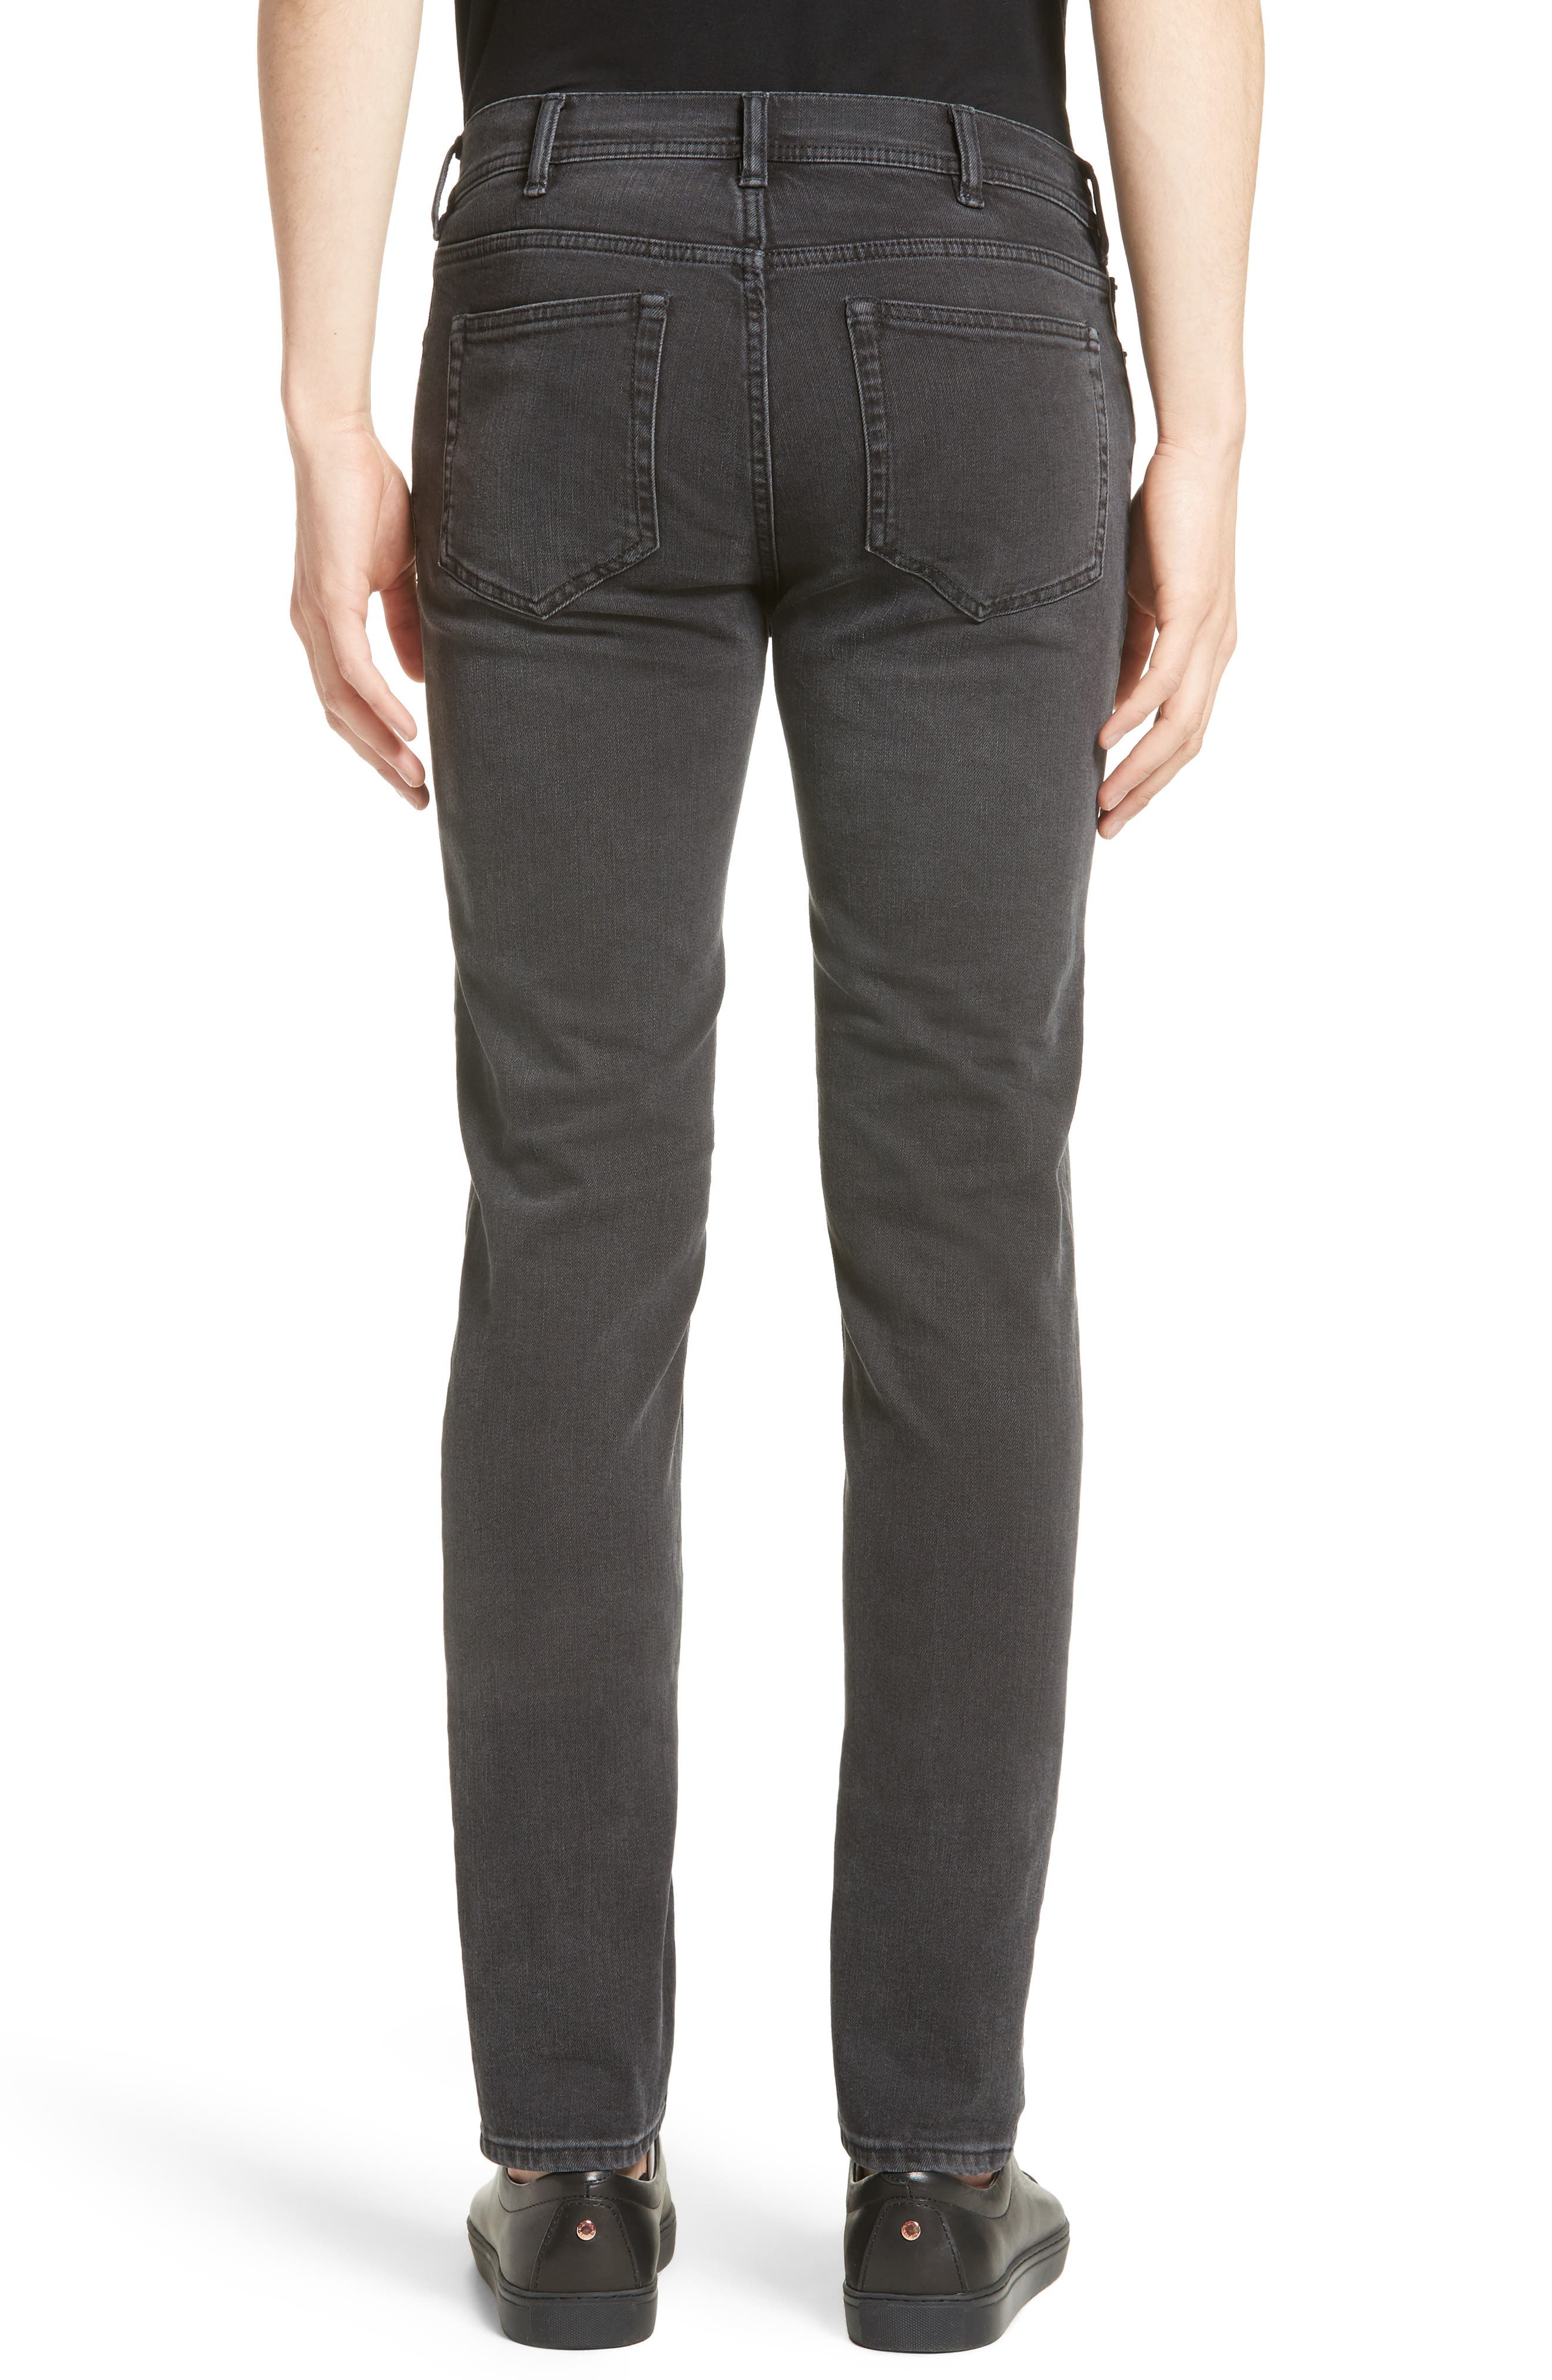 North Skinny Fit Jeans,                             Alternate thumbnail 2, color,                             USED BLACK